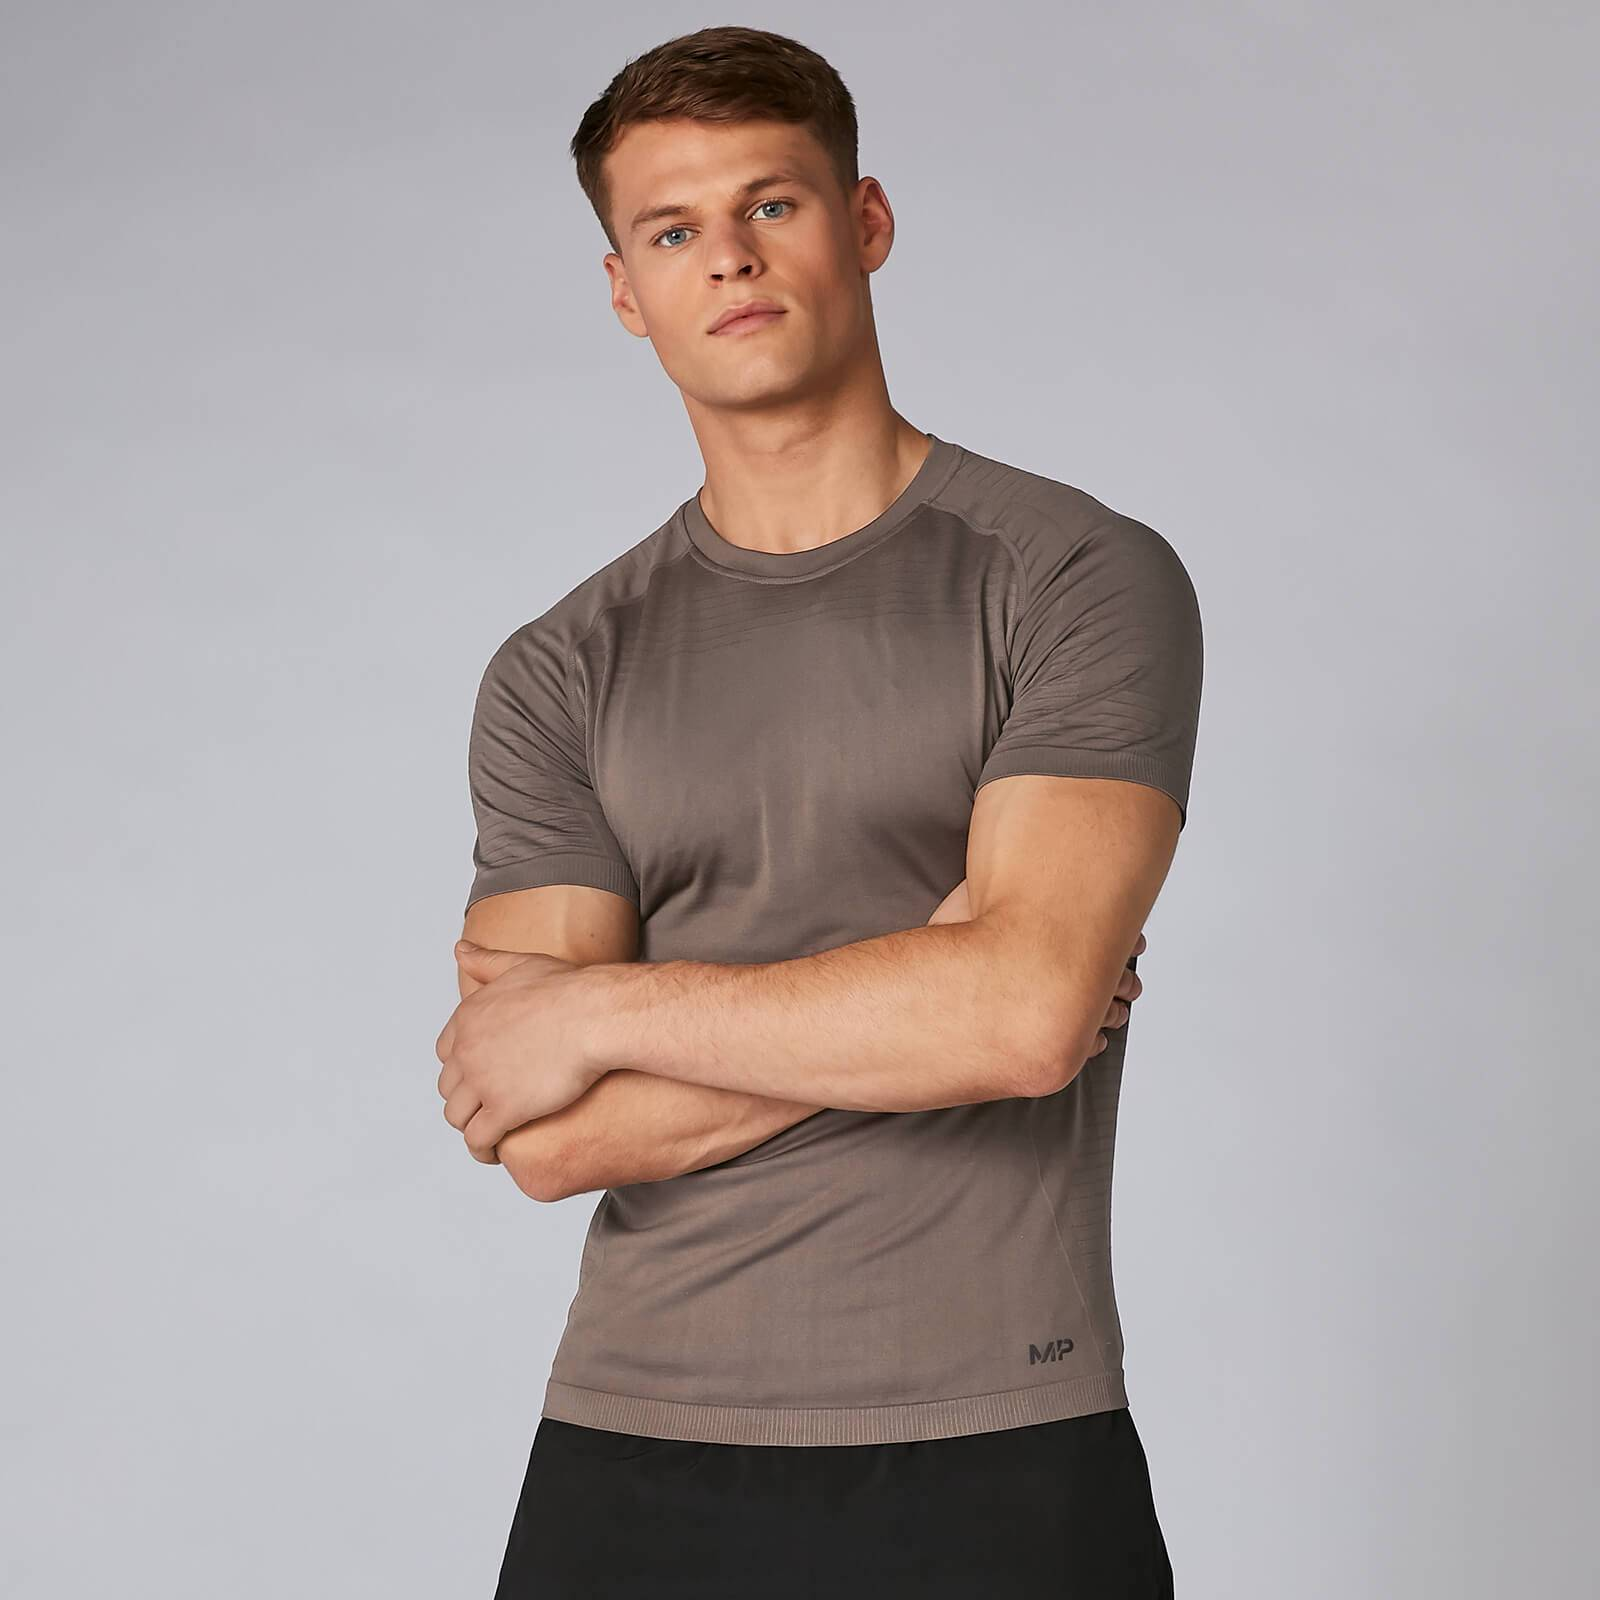 Myprotein MP Elite Seamless T-Shirt - Driftwood - S